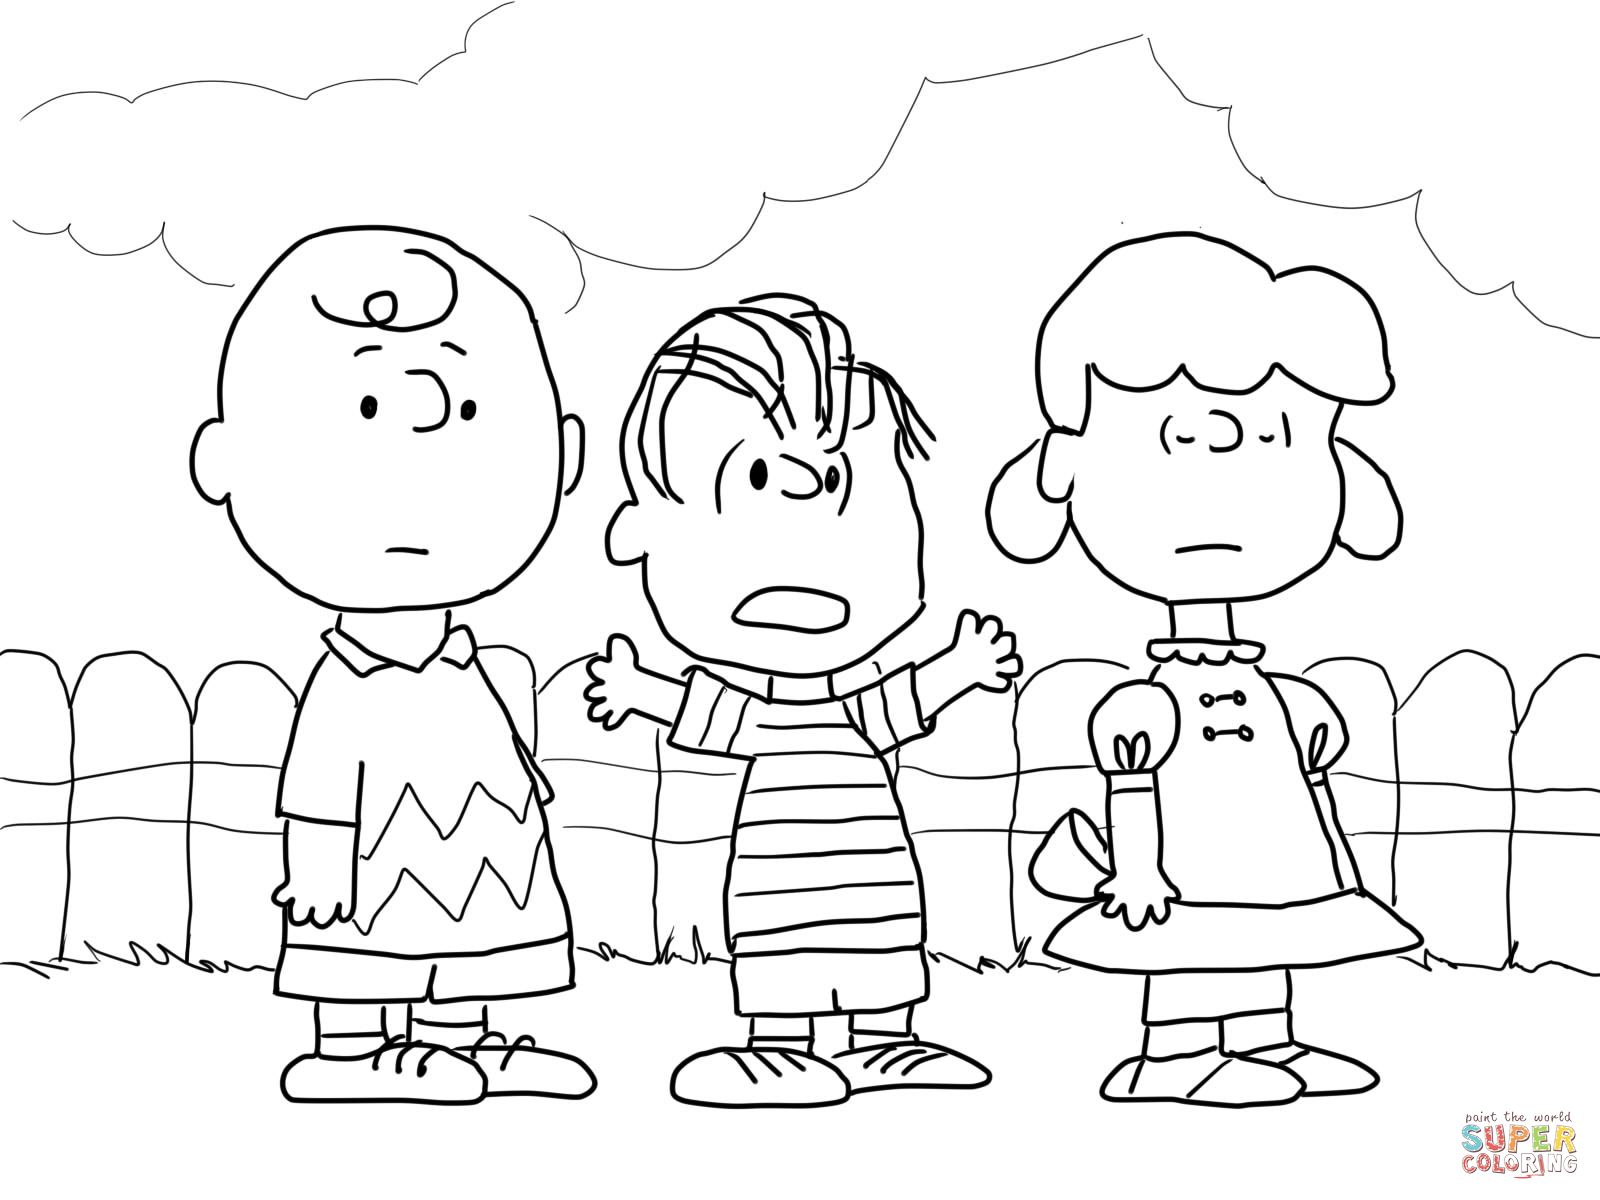 charlie brown lucy and linus coloring page supercoloringcom